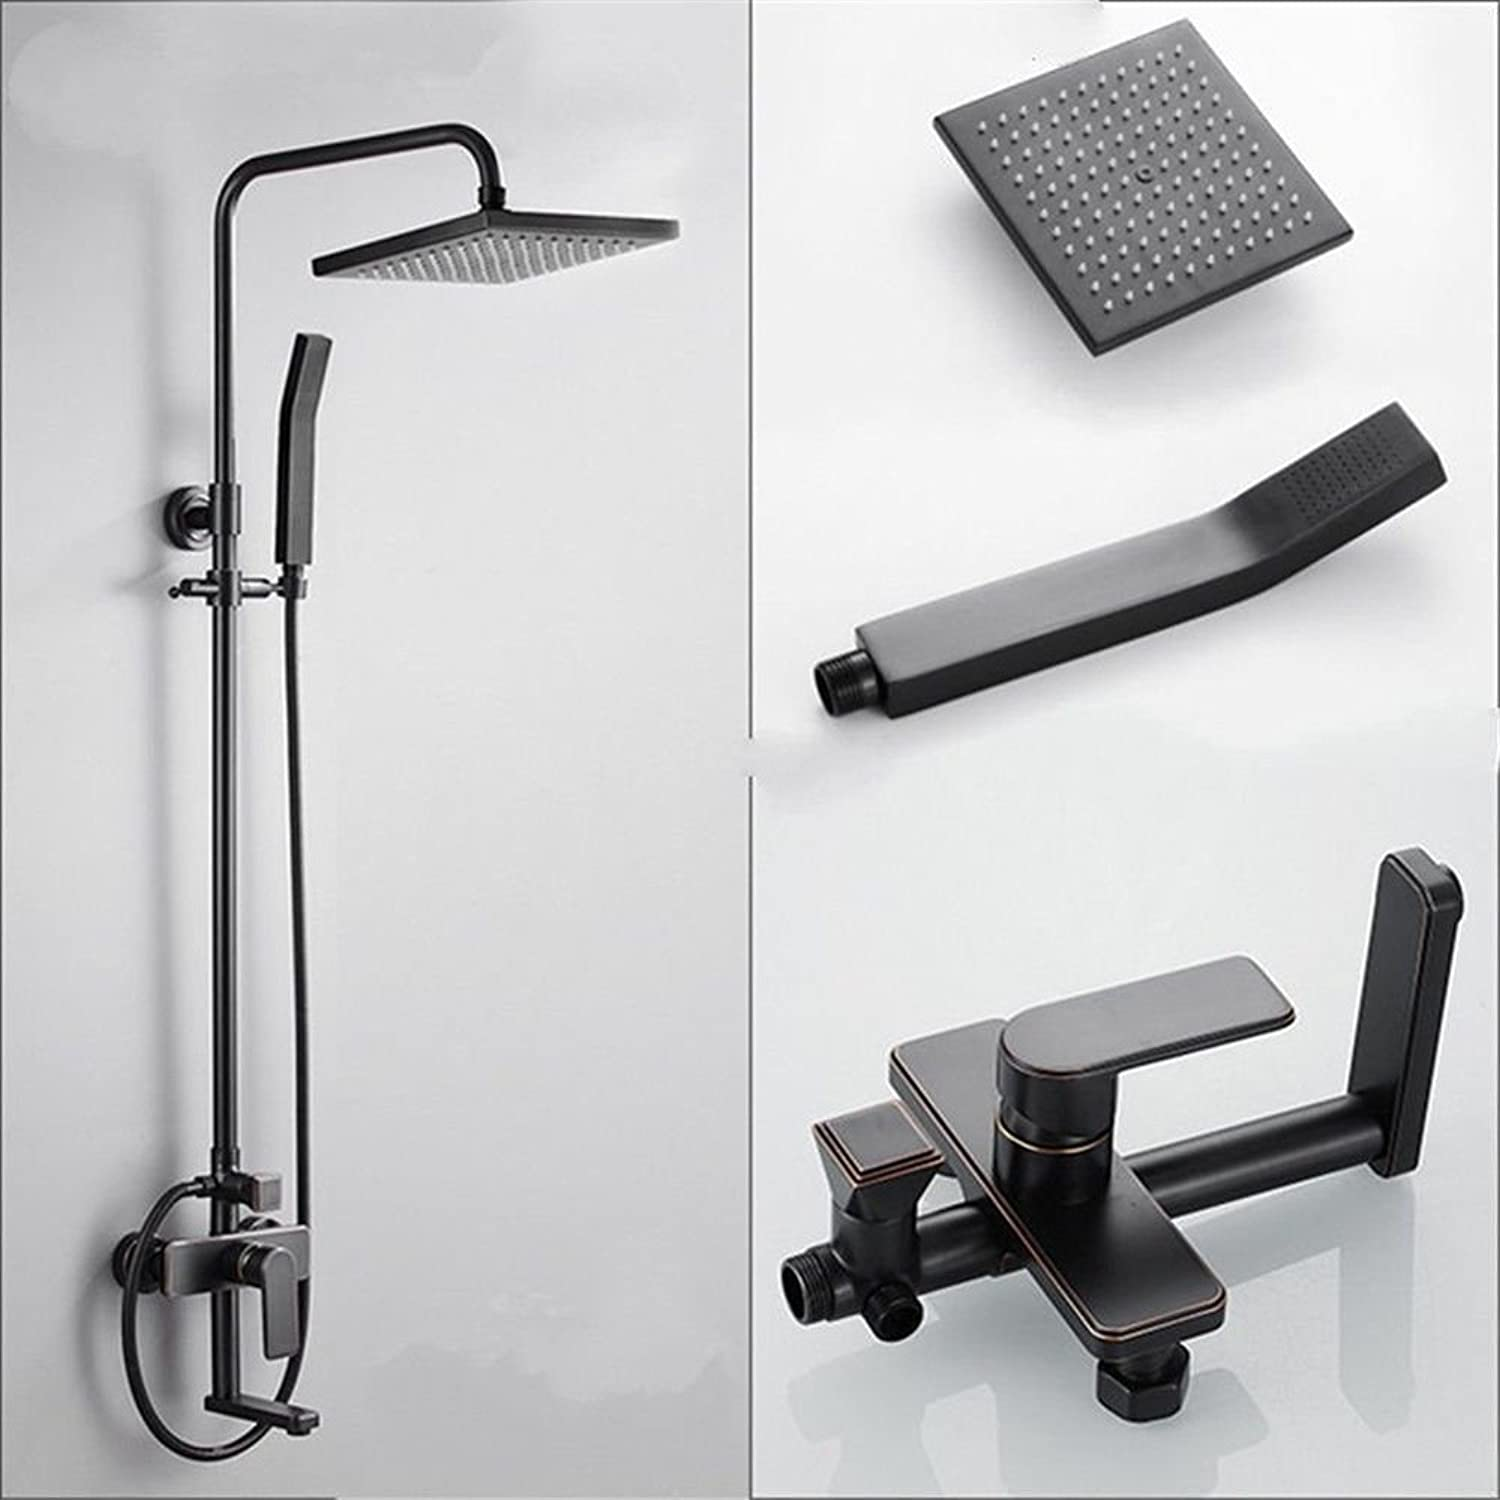 Hlluya Professional Sink Mixer Tap Kitchen Faucet The bathroom shower black shower faucets antique shower kit full copper into the wall square lift lever shower system,